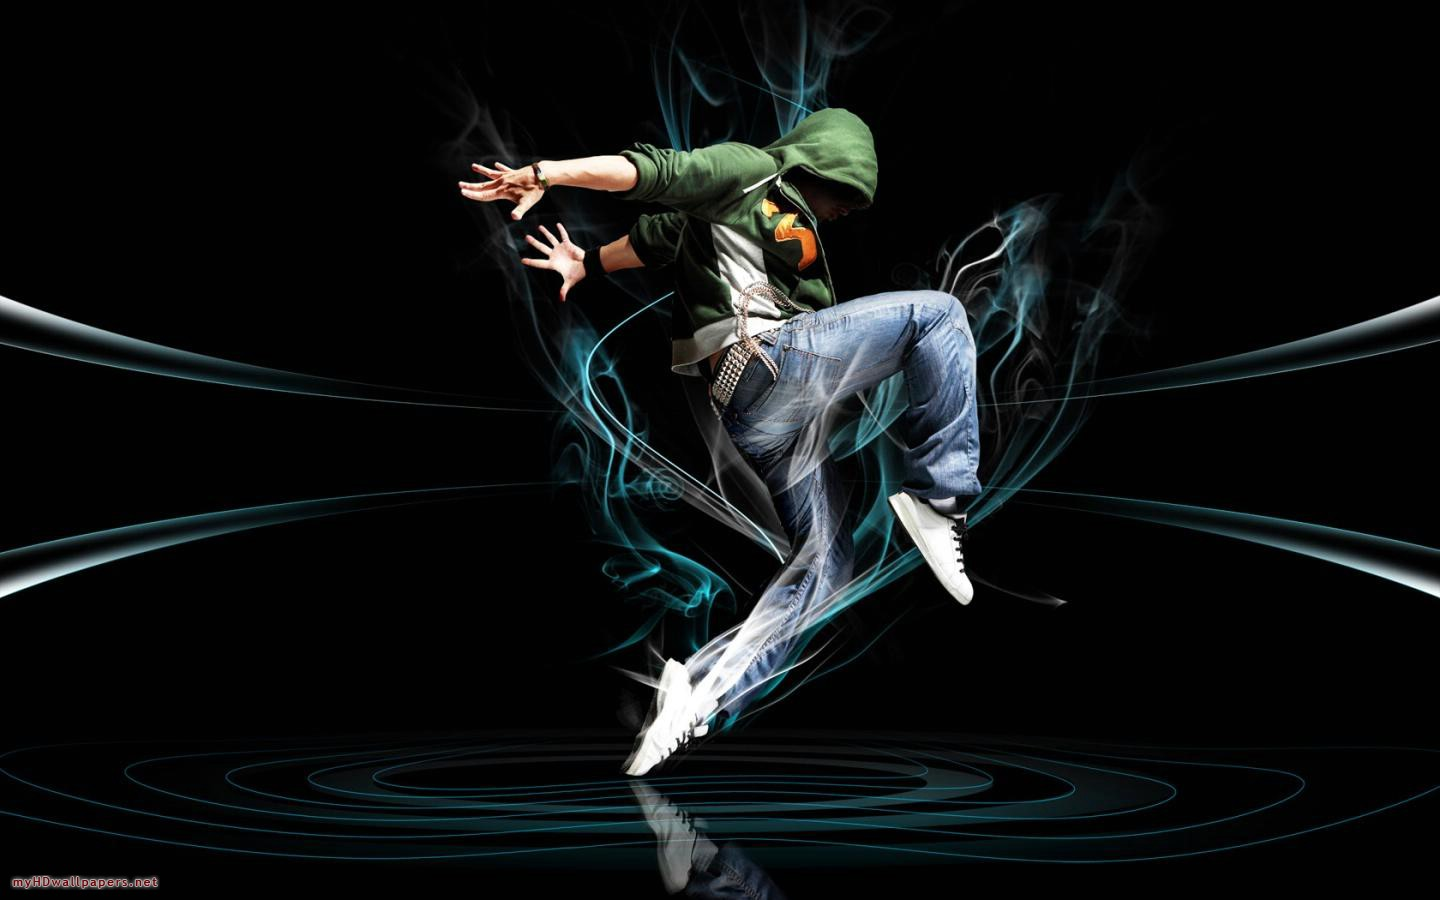 trololo blogg: Dance Wallpapers Download